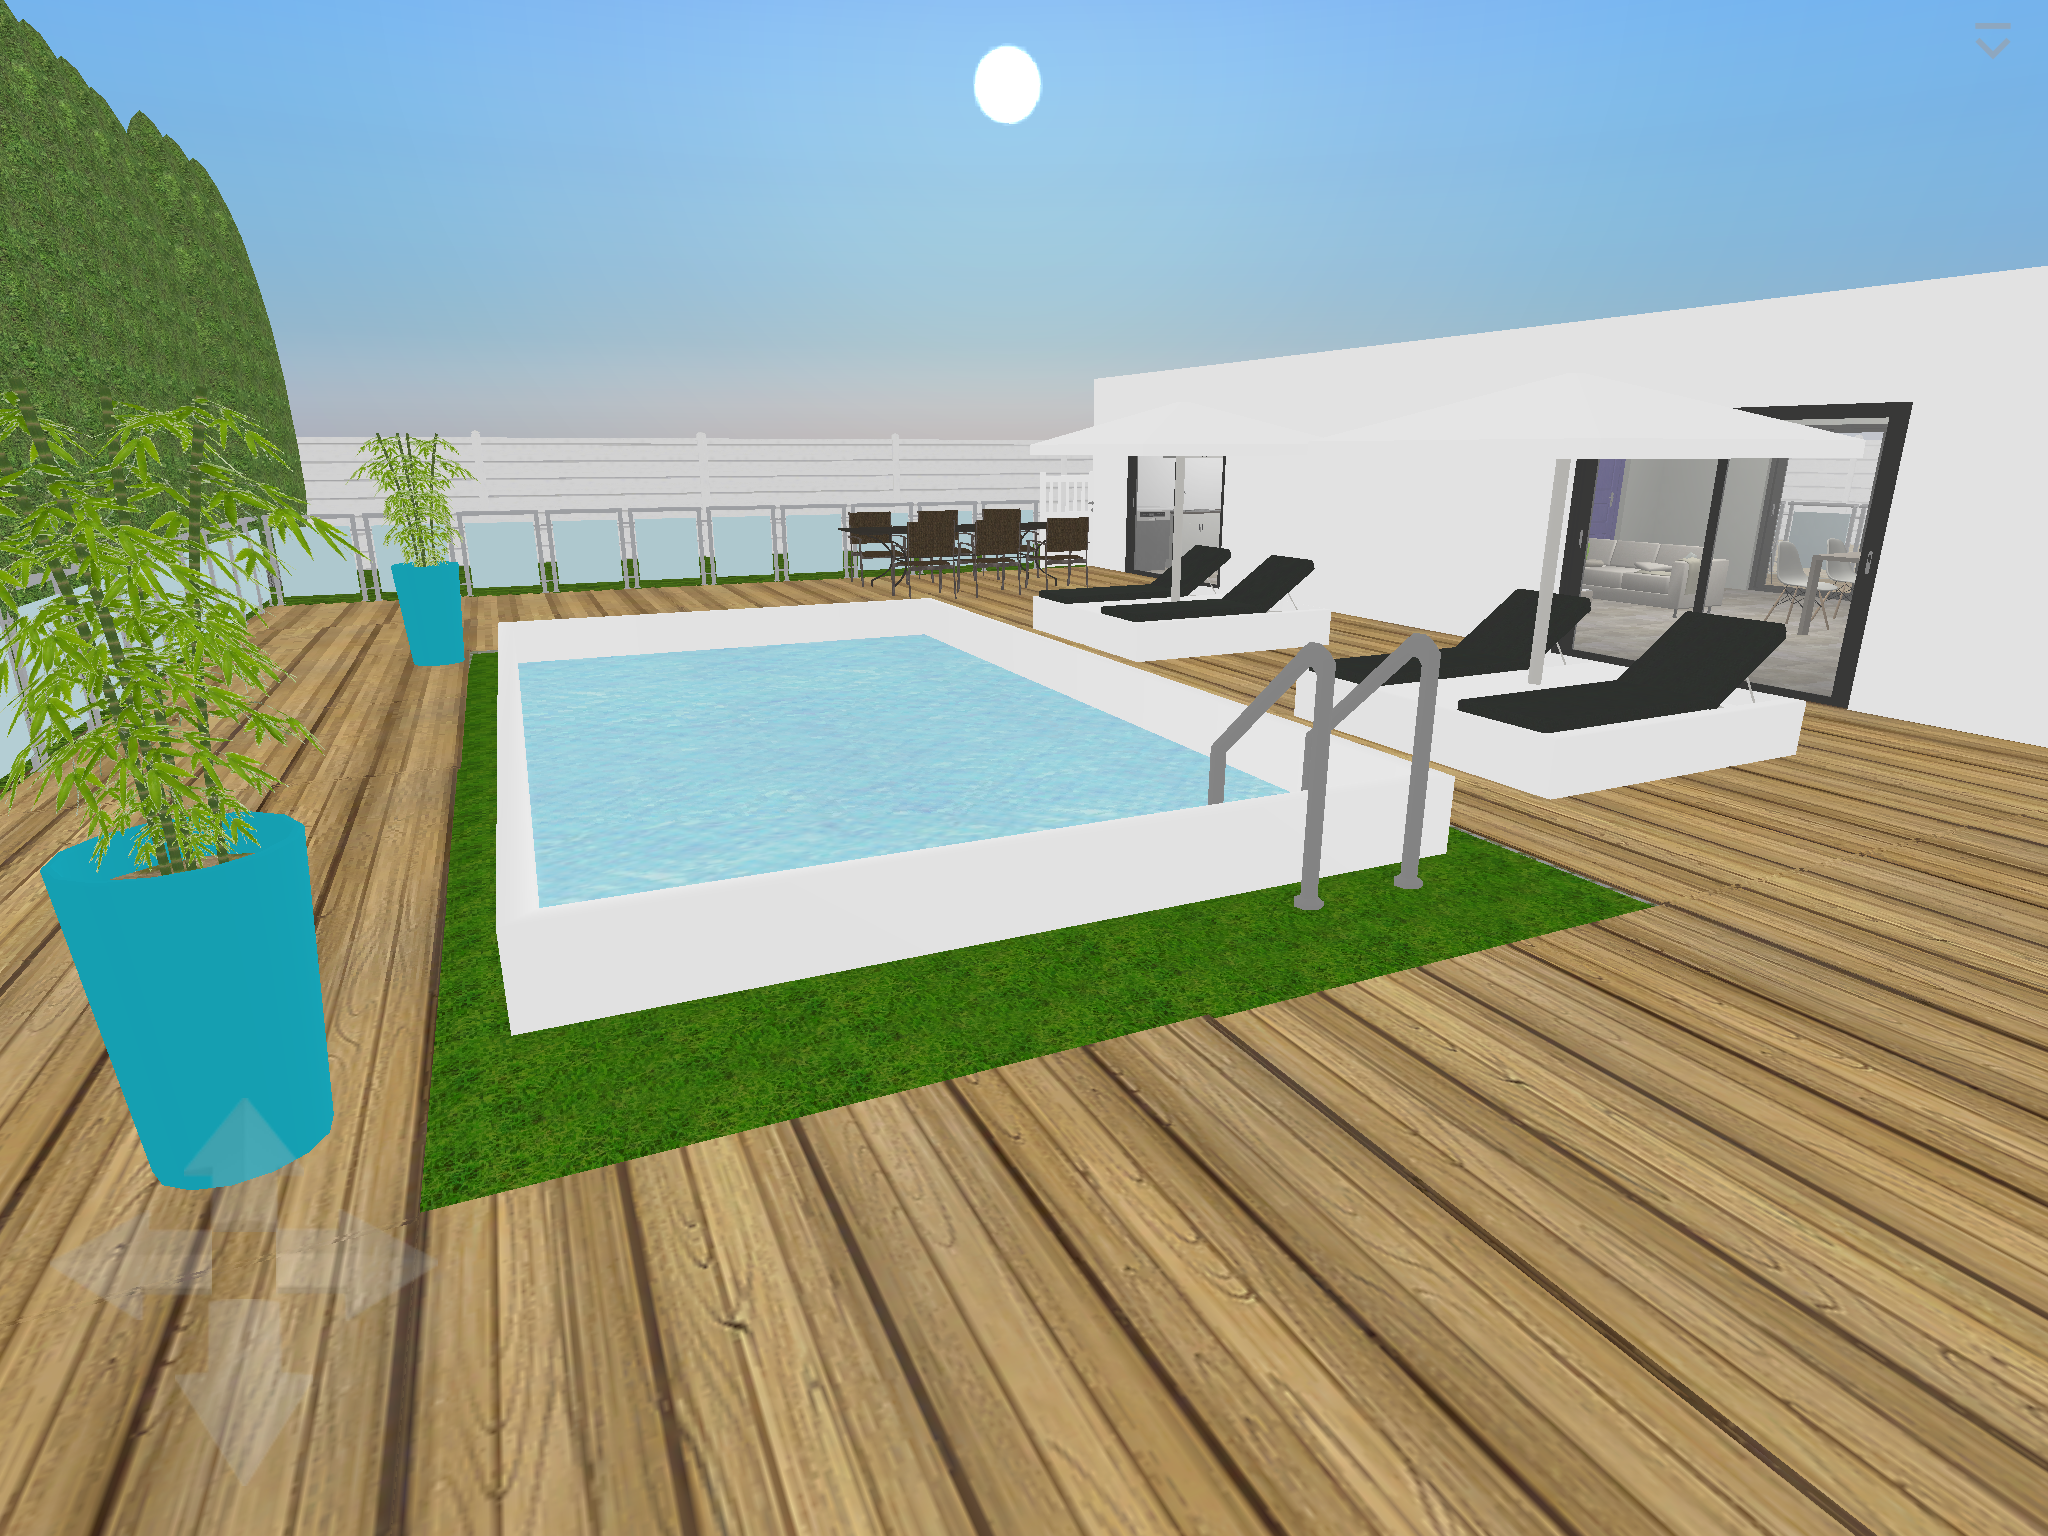 Plan 3D : Terrasse + Piscine Logiciel : Home Design 3D Gold